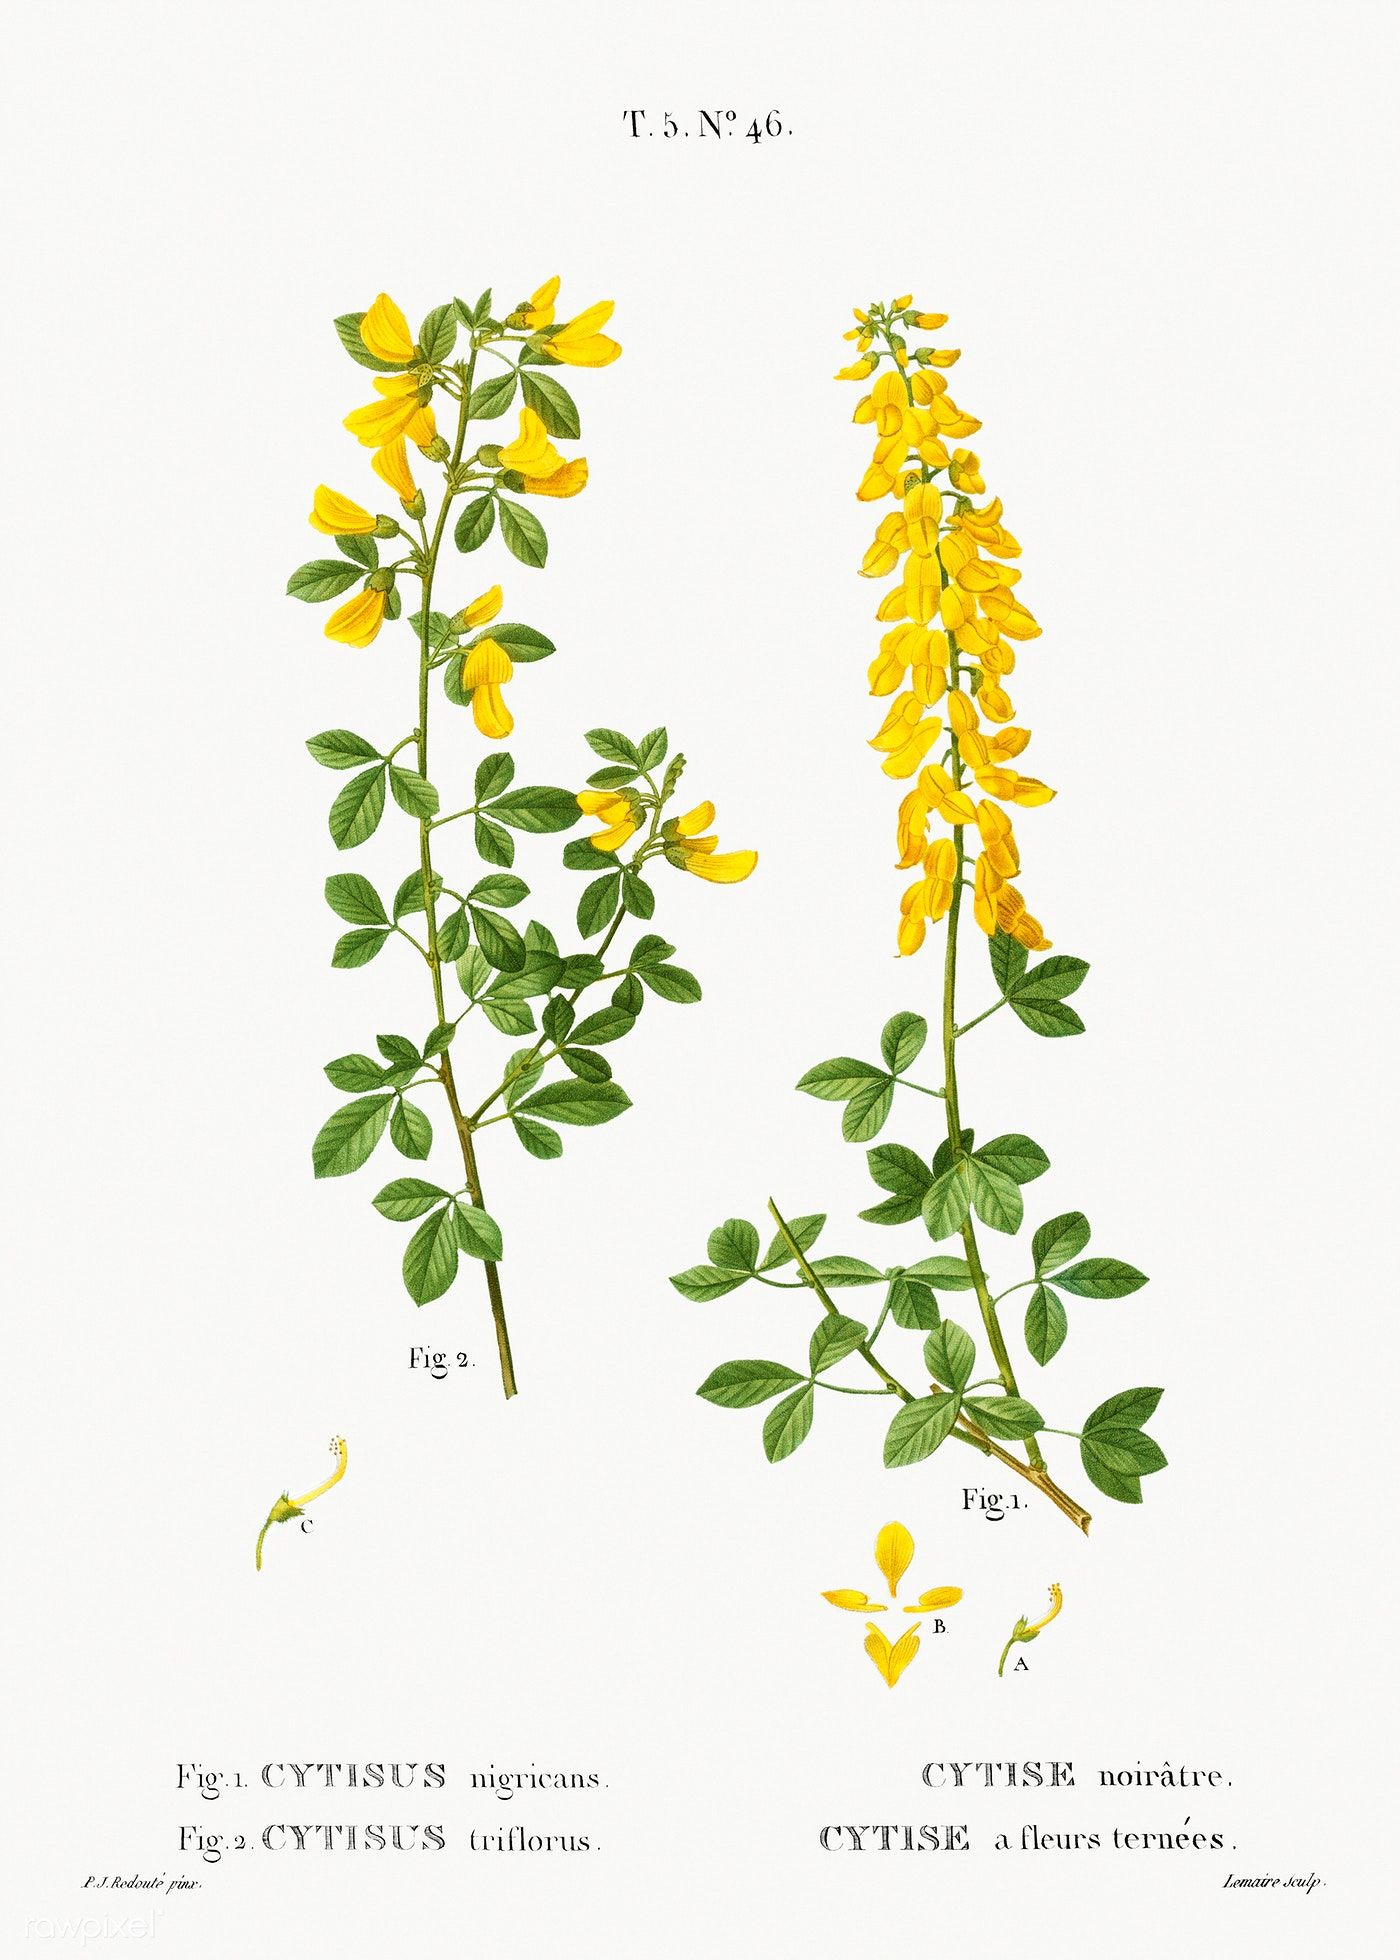 Black Broom Cytisus Nigricans And Hairy Broom Cytisus Triflorusfrom Trait Eacute Des Arbres Et Arbus Plant Illustration Botanical Artwork Botanical Drawings